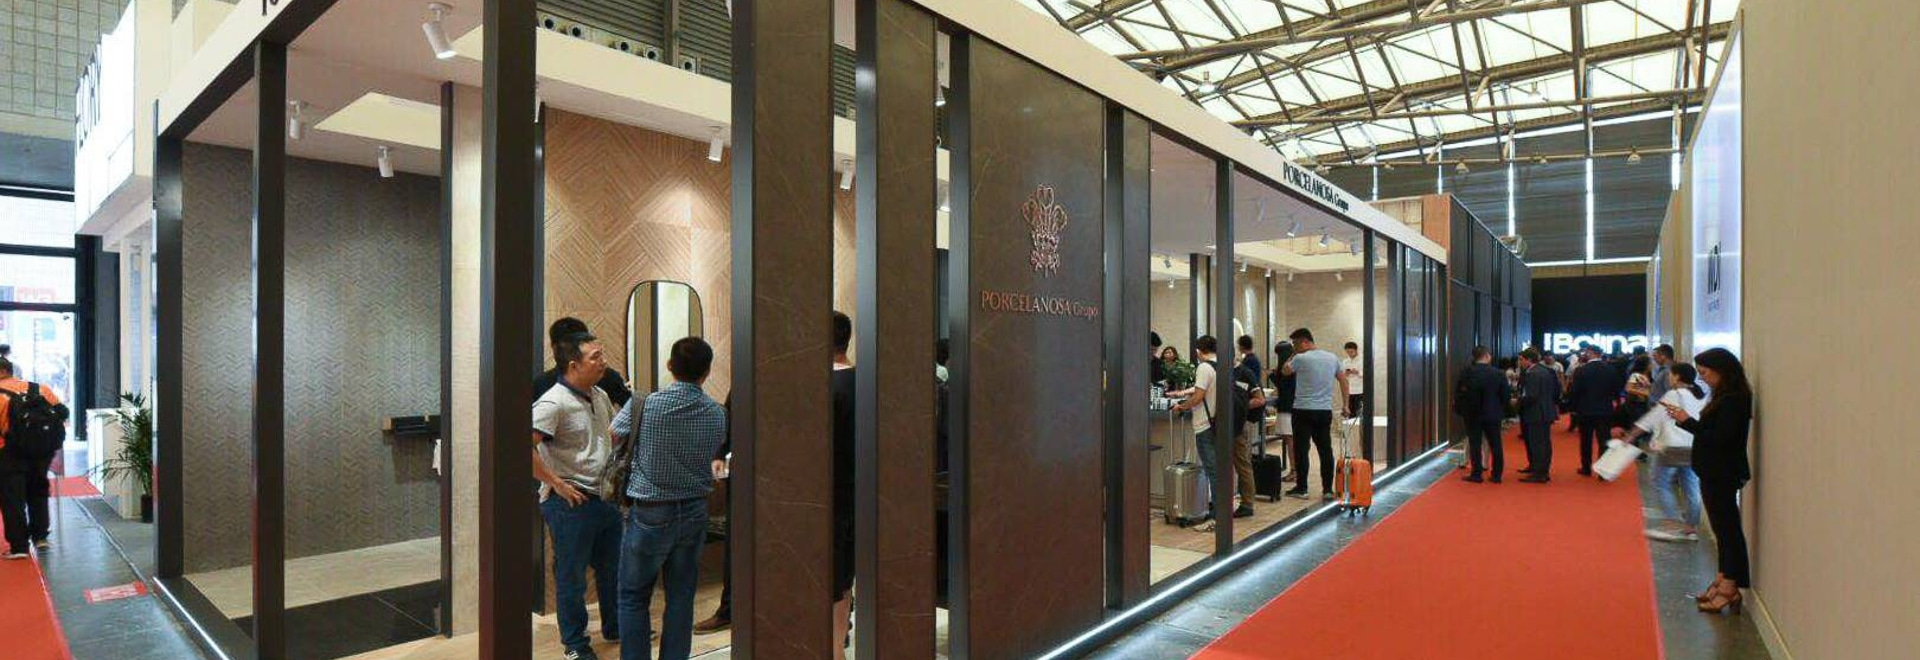 KBC 2018, fascination in China for XLIGHT's opportunities